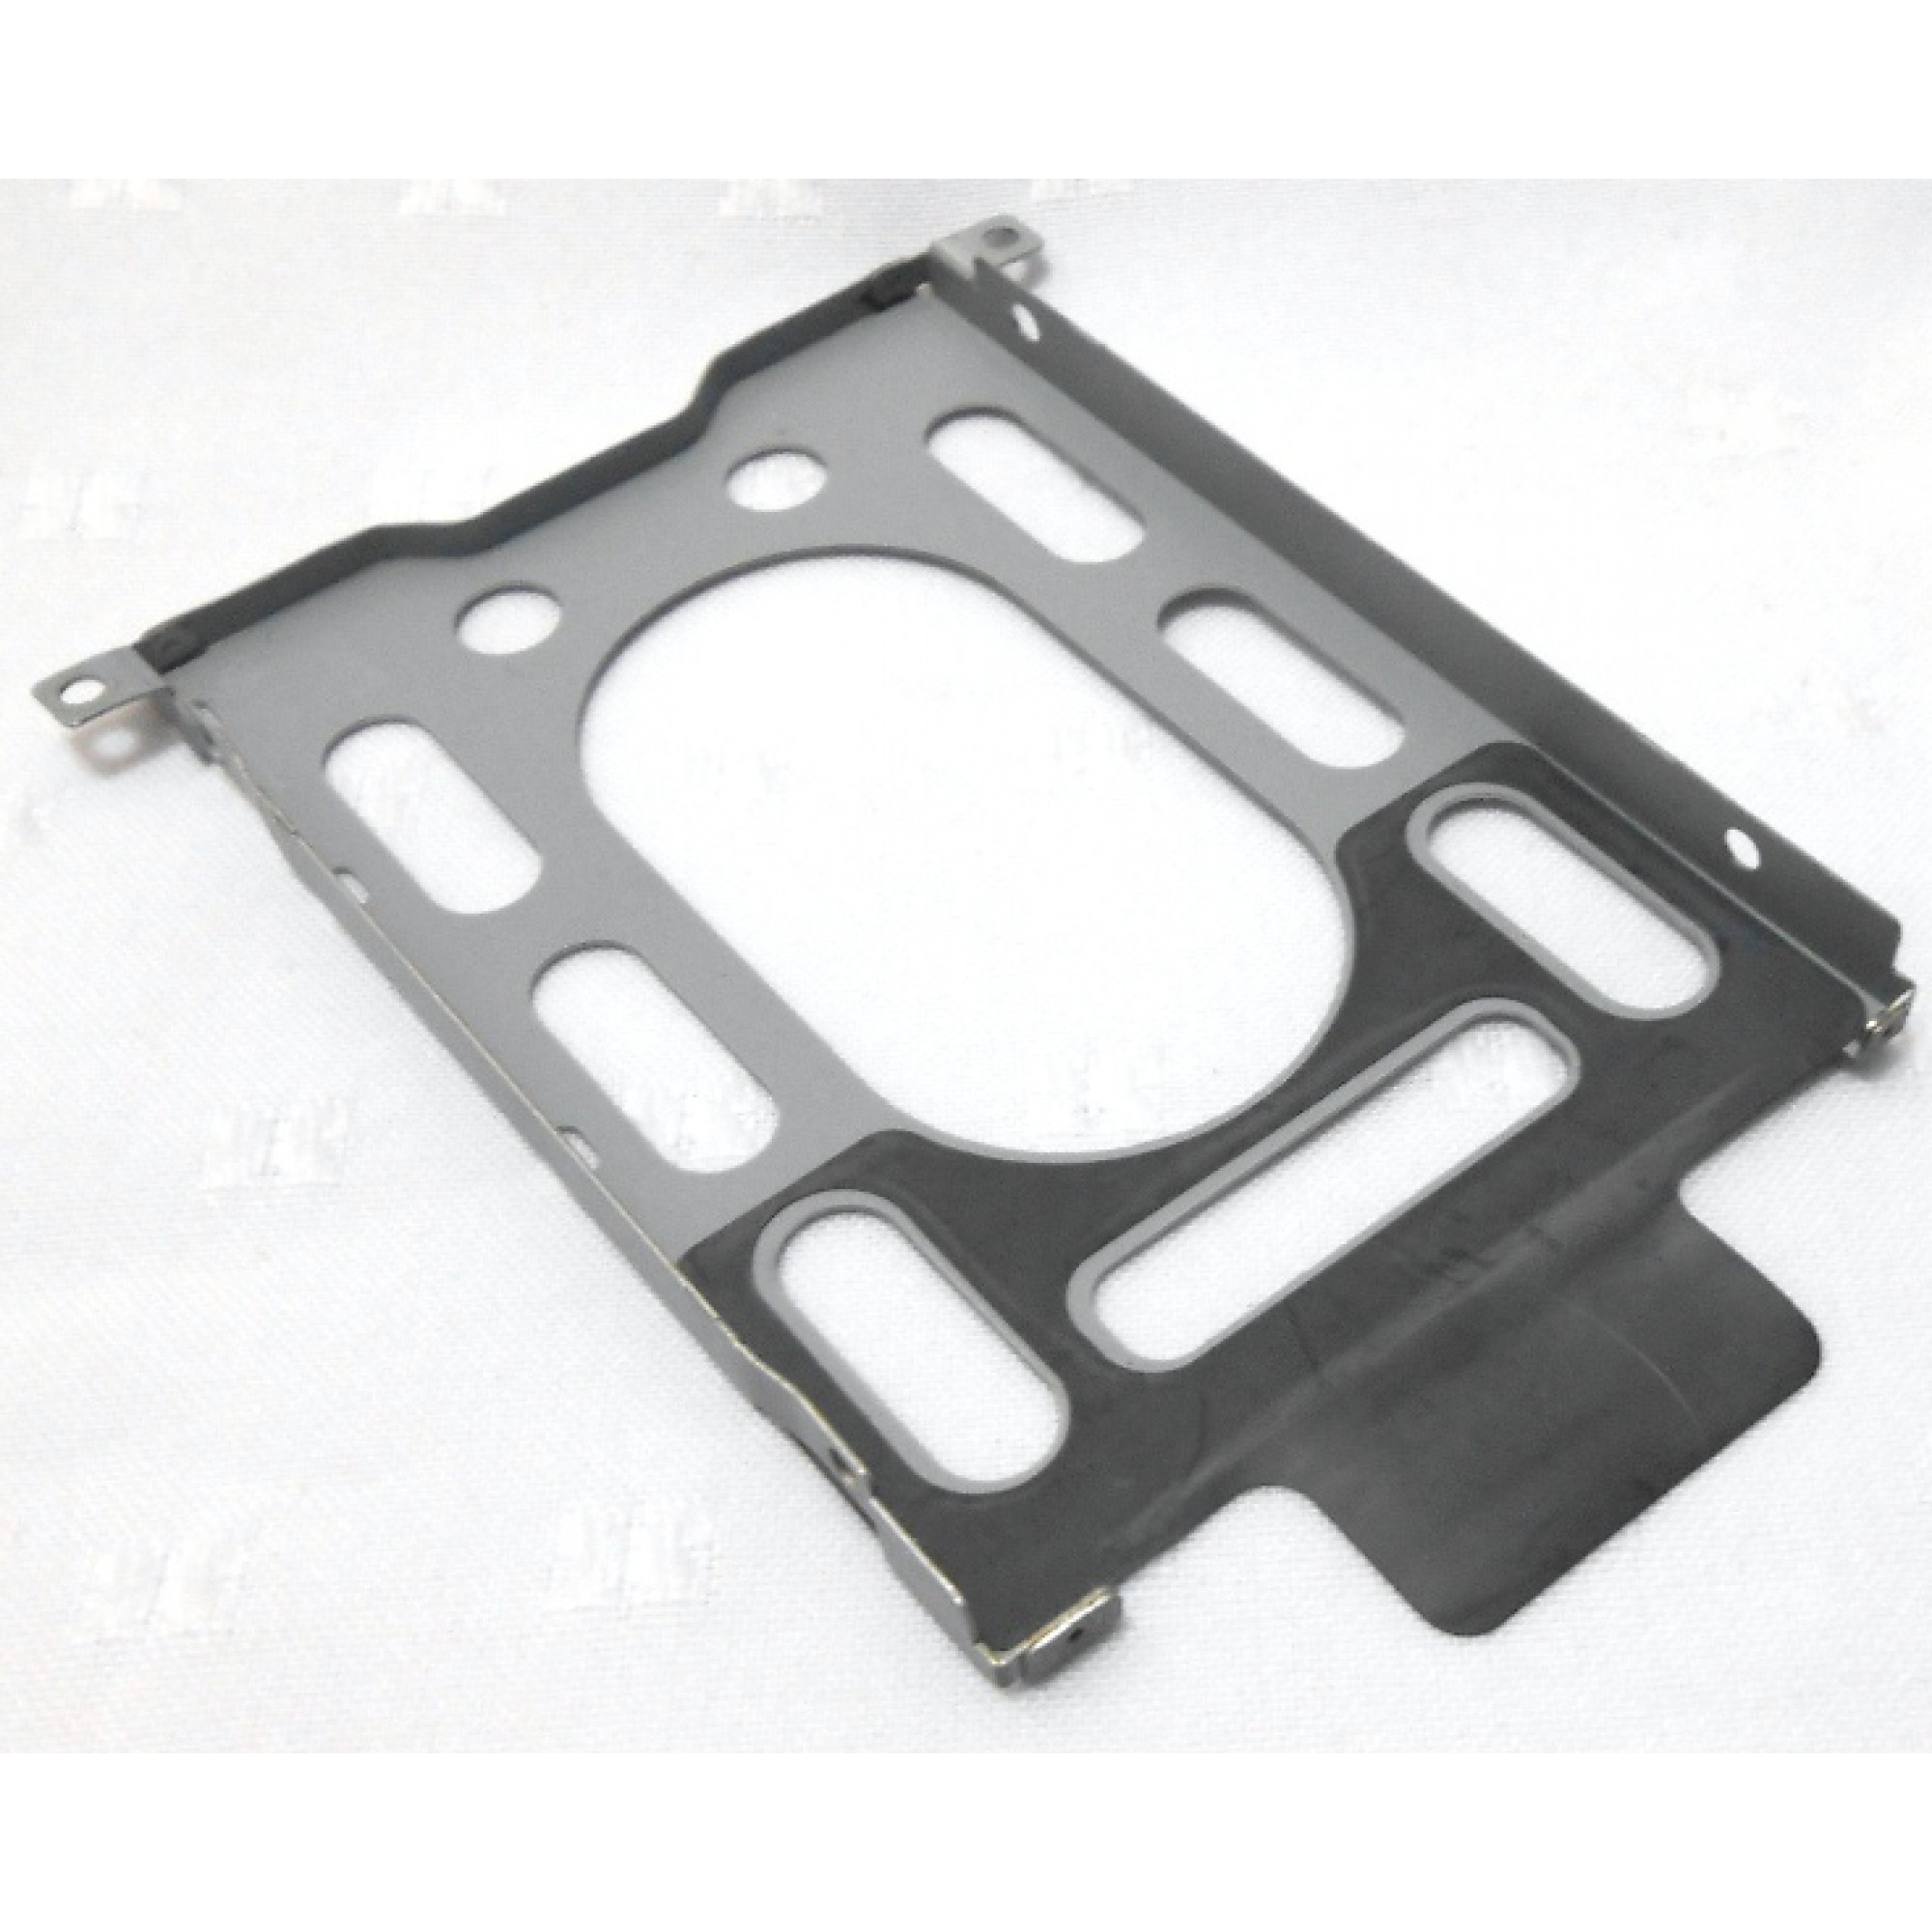 Caddy para disco duro Dell Inspiron Duo 1090 IPP9